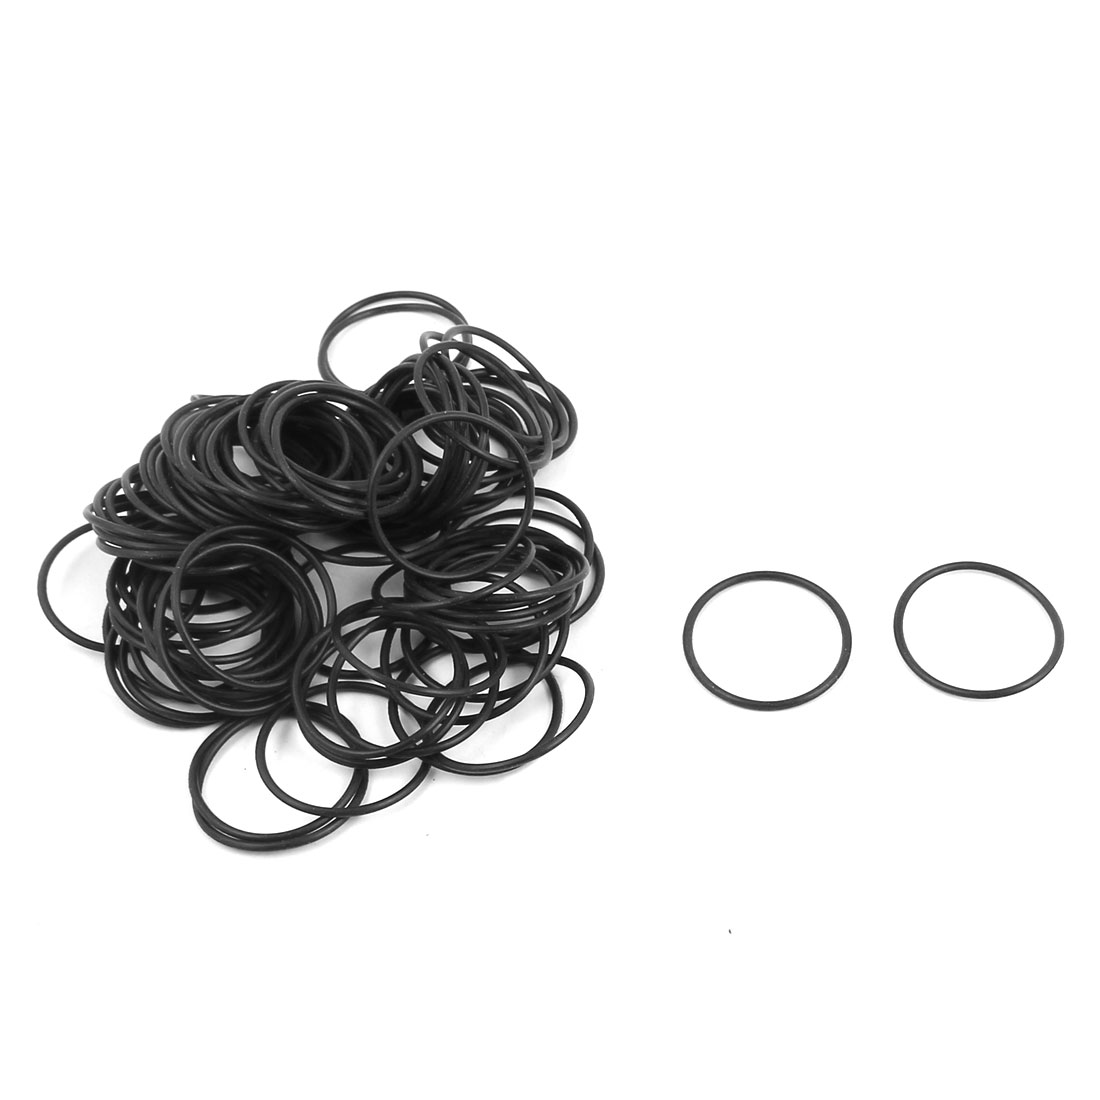 100Pcs 22x1.2mm Nitrile Rubber O-rings Heat Resistant Sealing Ring Grommets Black